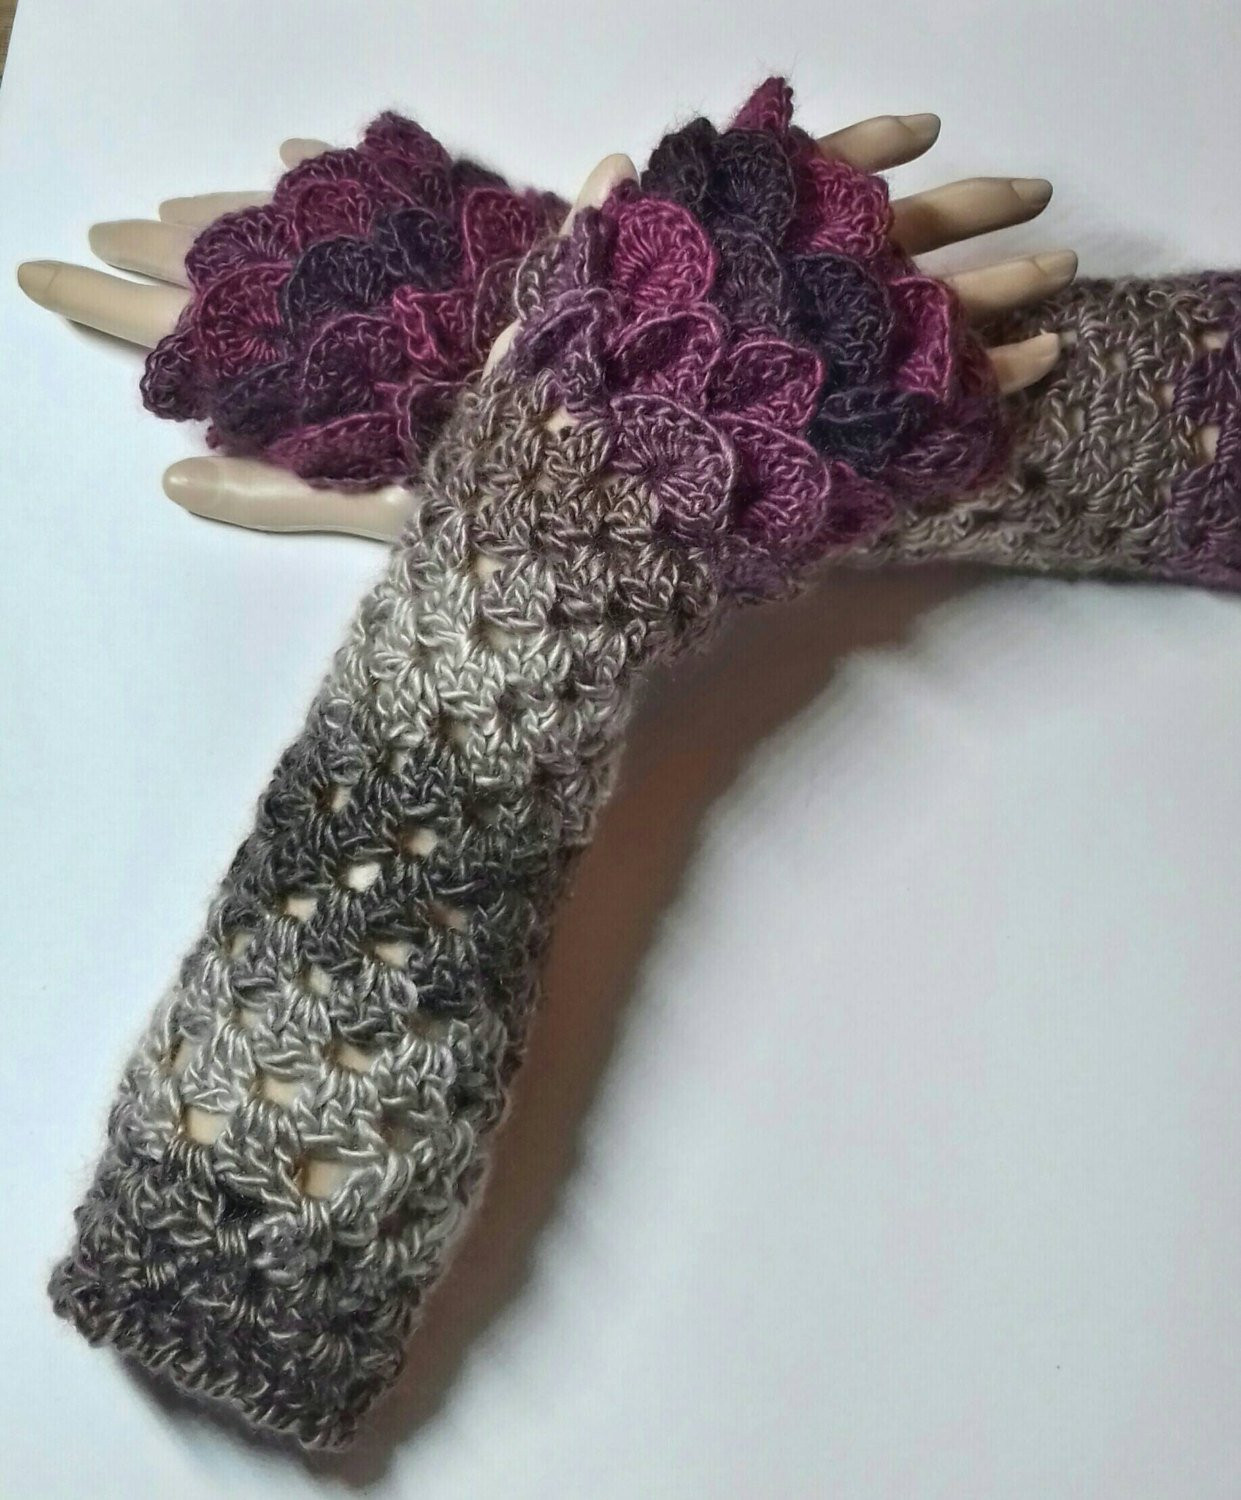 Dragon Scale Crochet Gloves Lovely Dragon Scale Ombre Glovesmermaid Cuffsdragon Gloves Of Dragon Scale Crochet Gloves Luxury Crochet Pattern Erebor Dragon Scale Fingerless Gloves Dragon